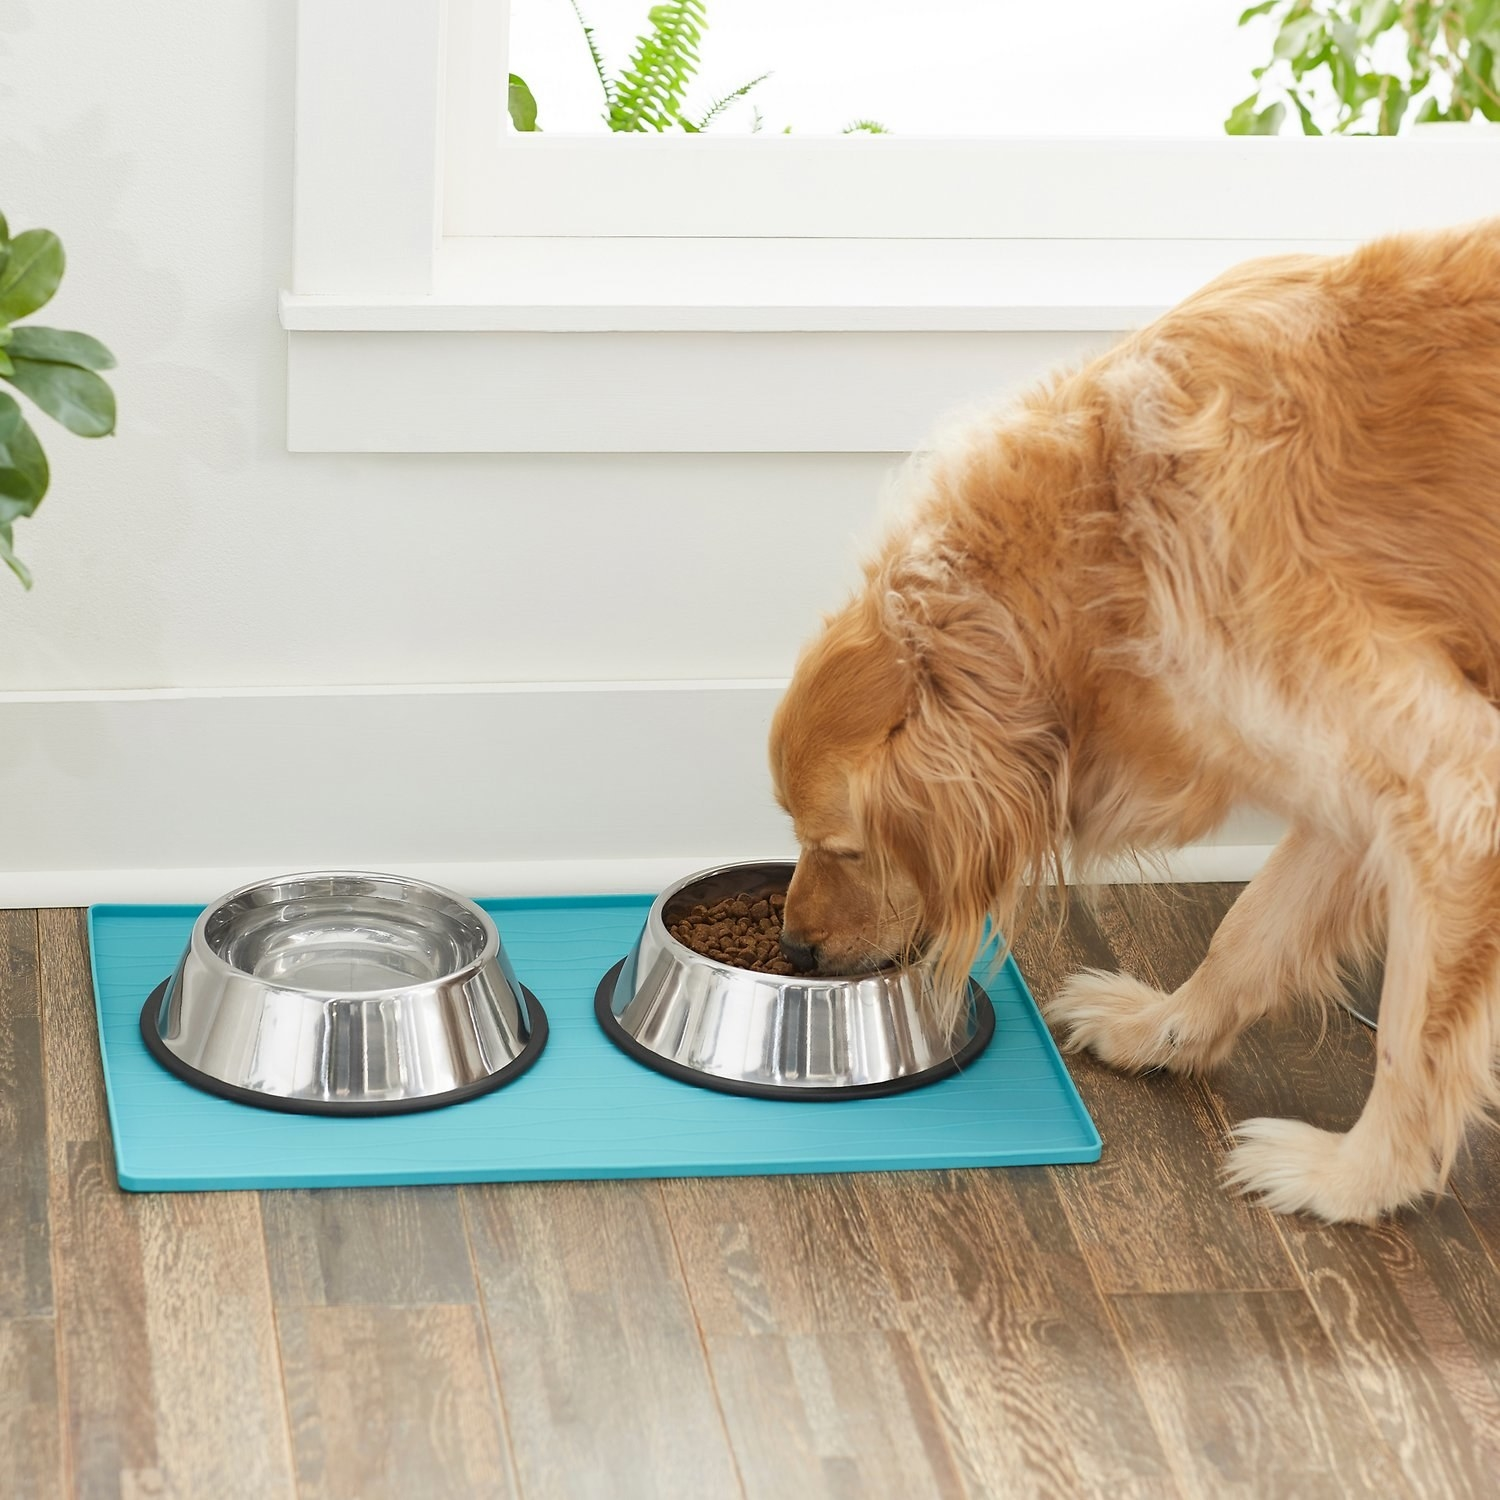 a dog eating from a bowl that's resting on the mat